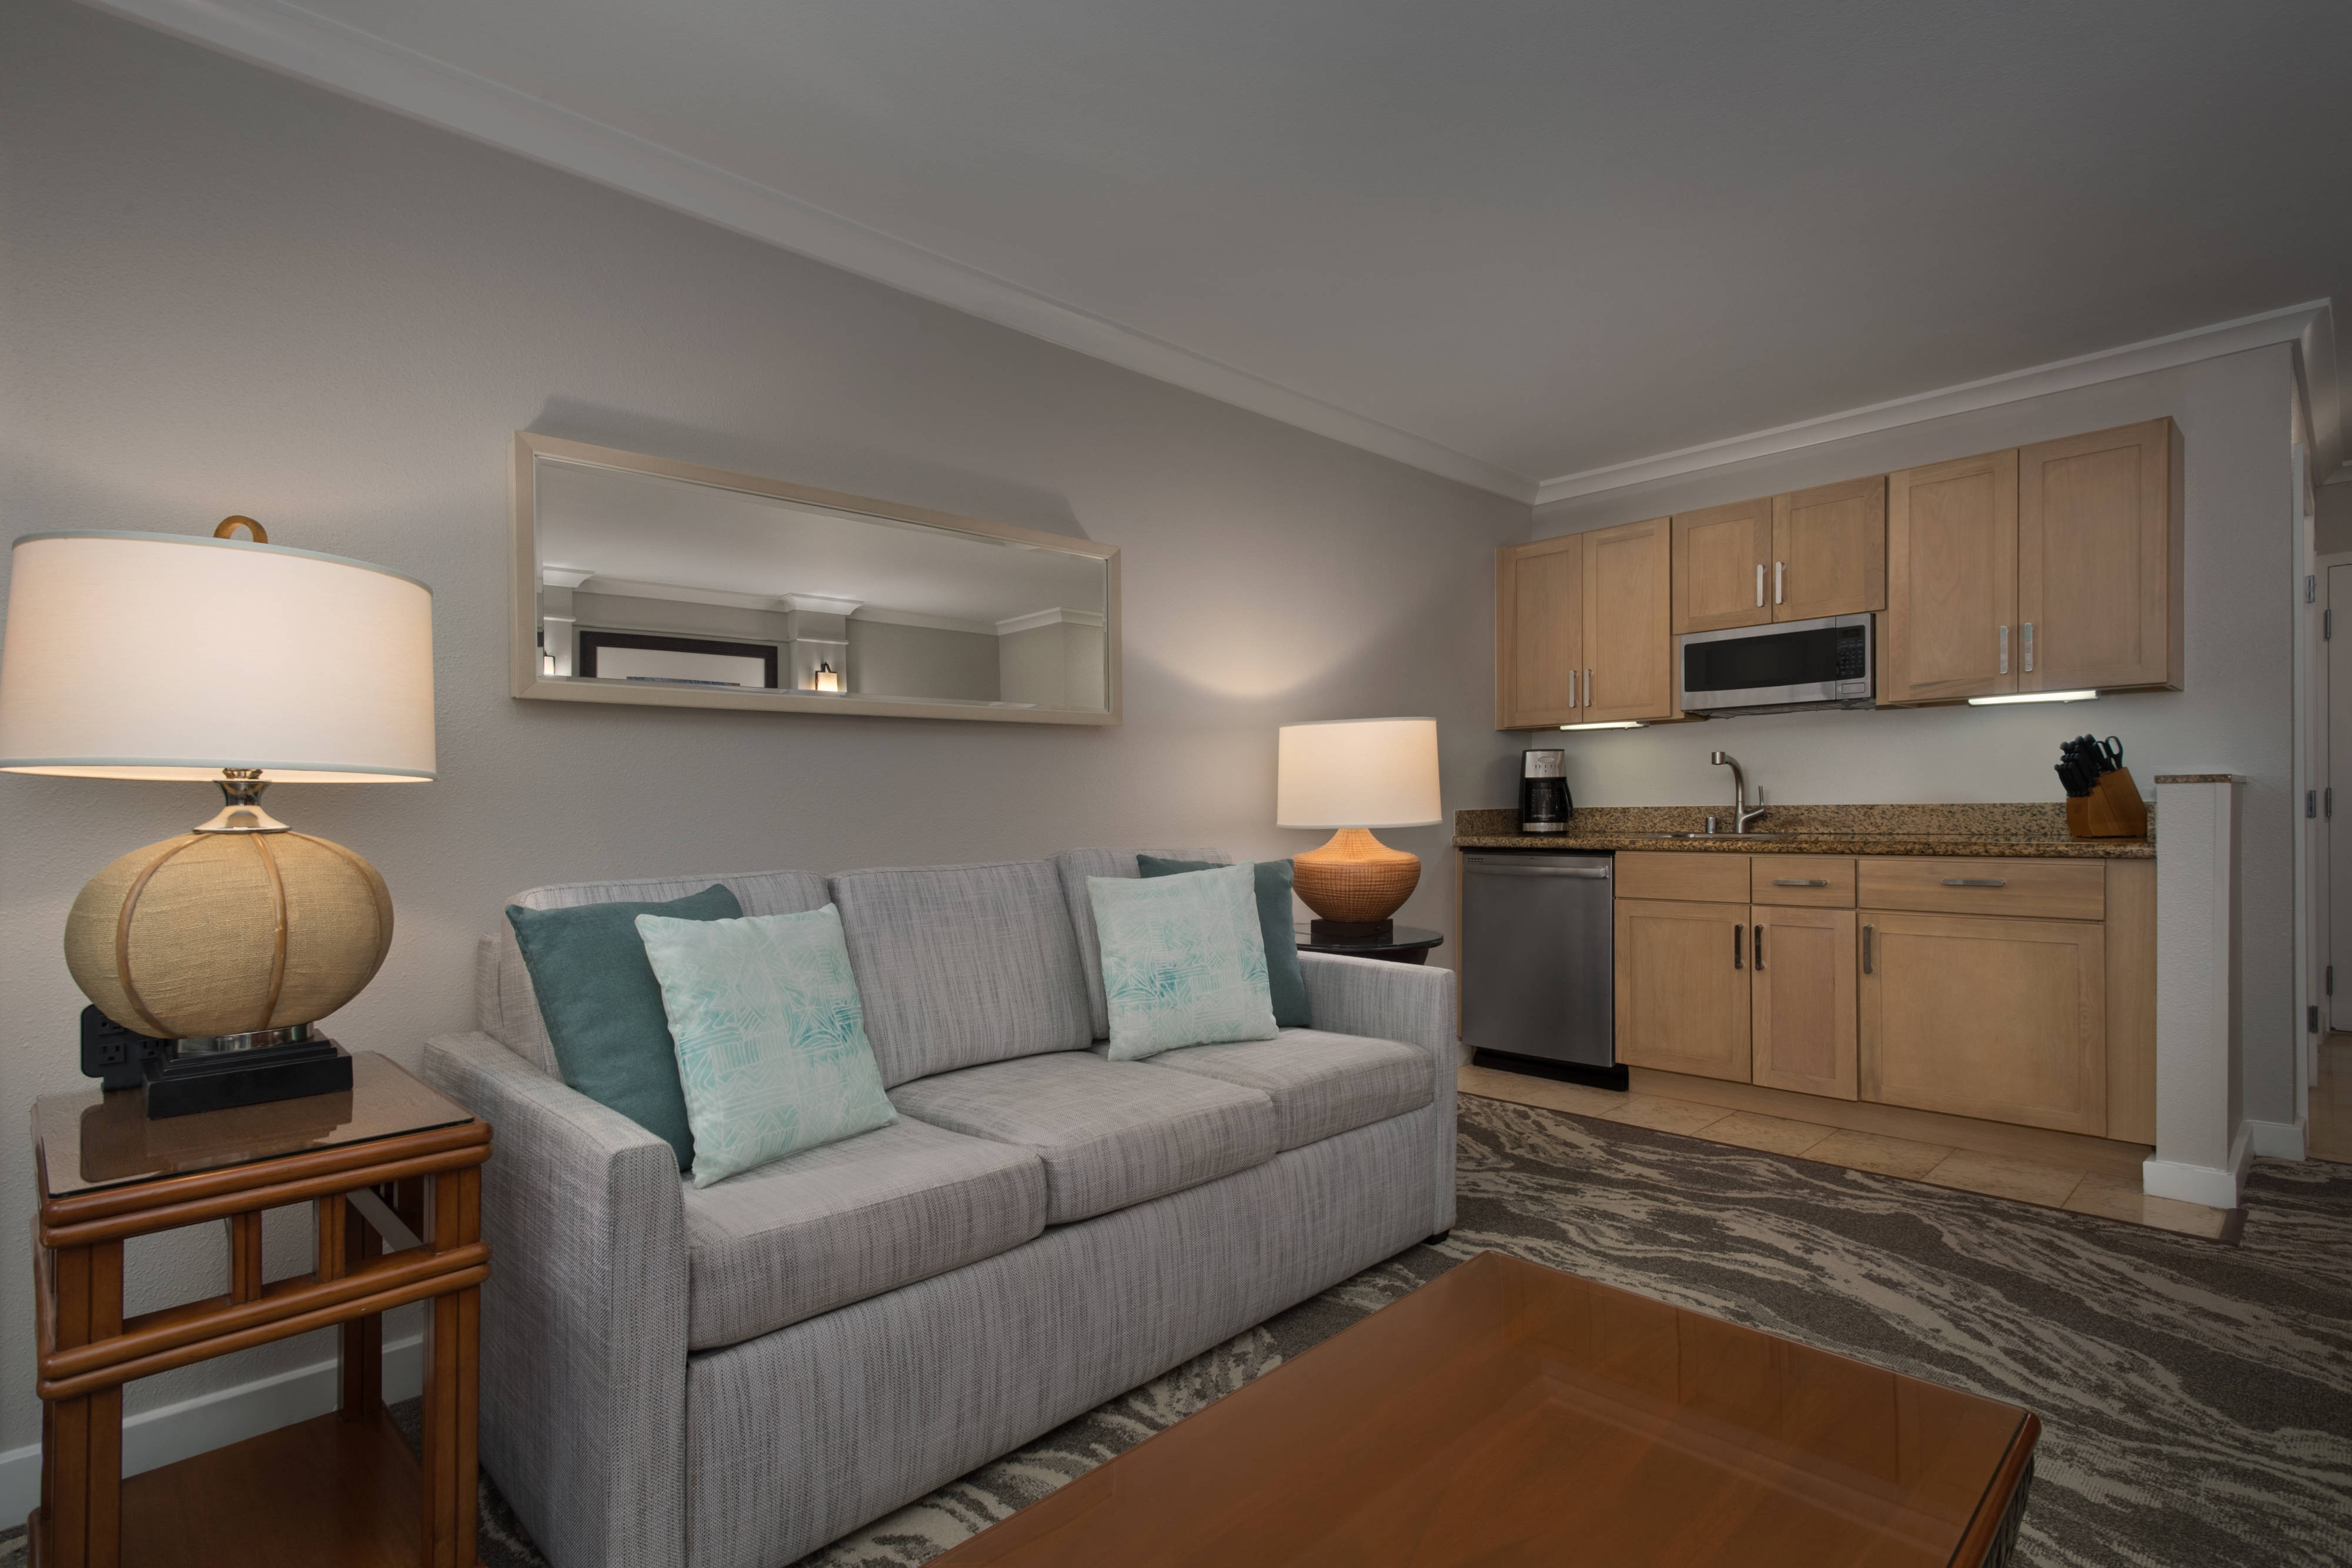 extended new inn in orleans suite stay clsc hotels hotel denton suites hor dfwrd rooms bedroom residence